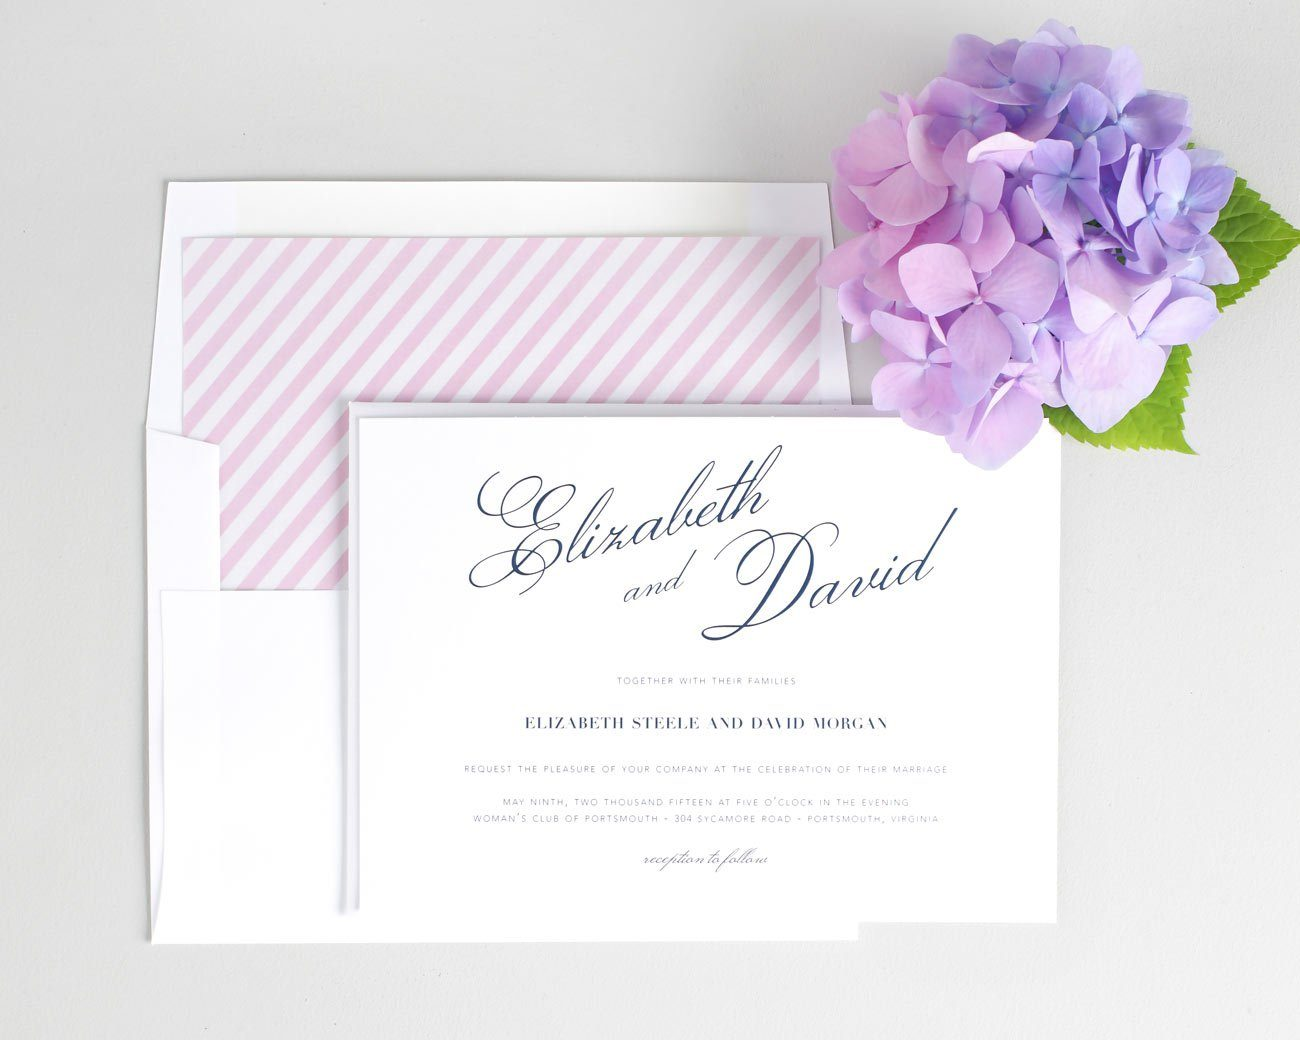 Vintage wedding invitations in pink and navy blue